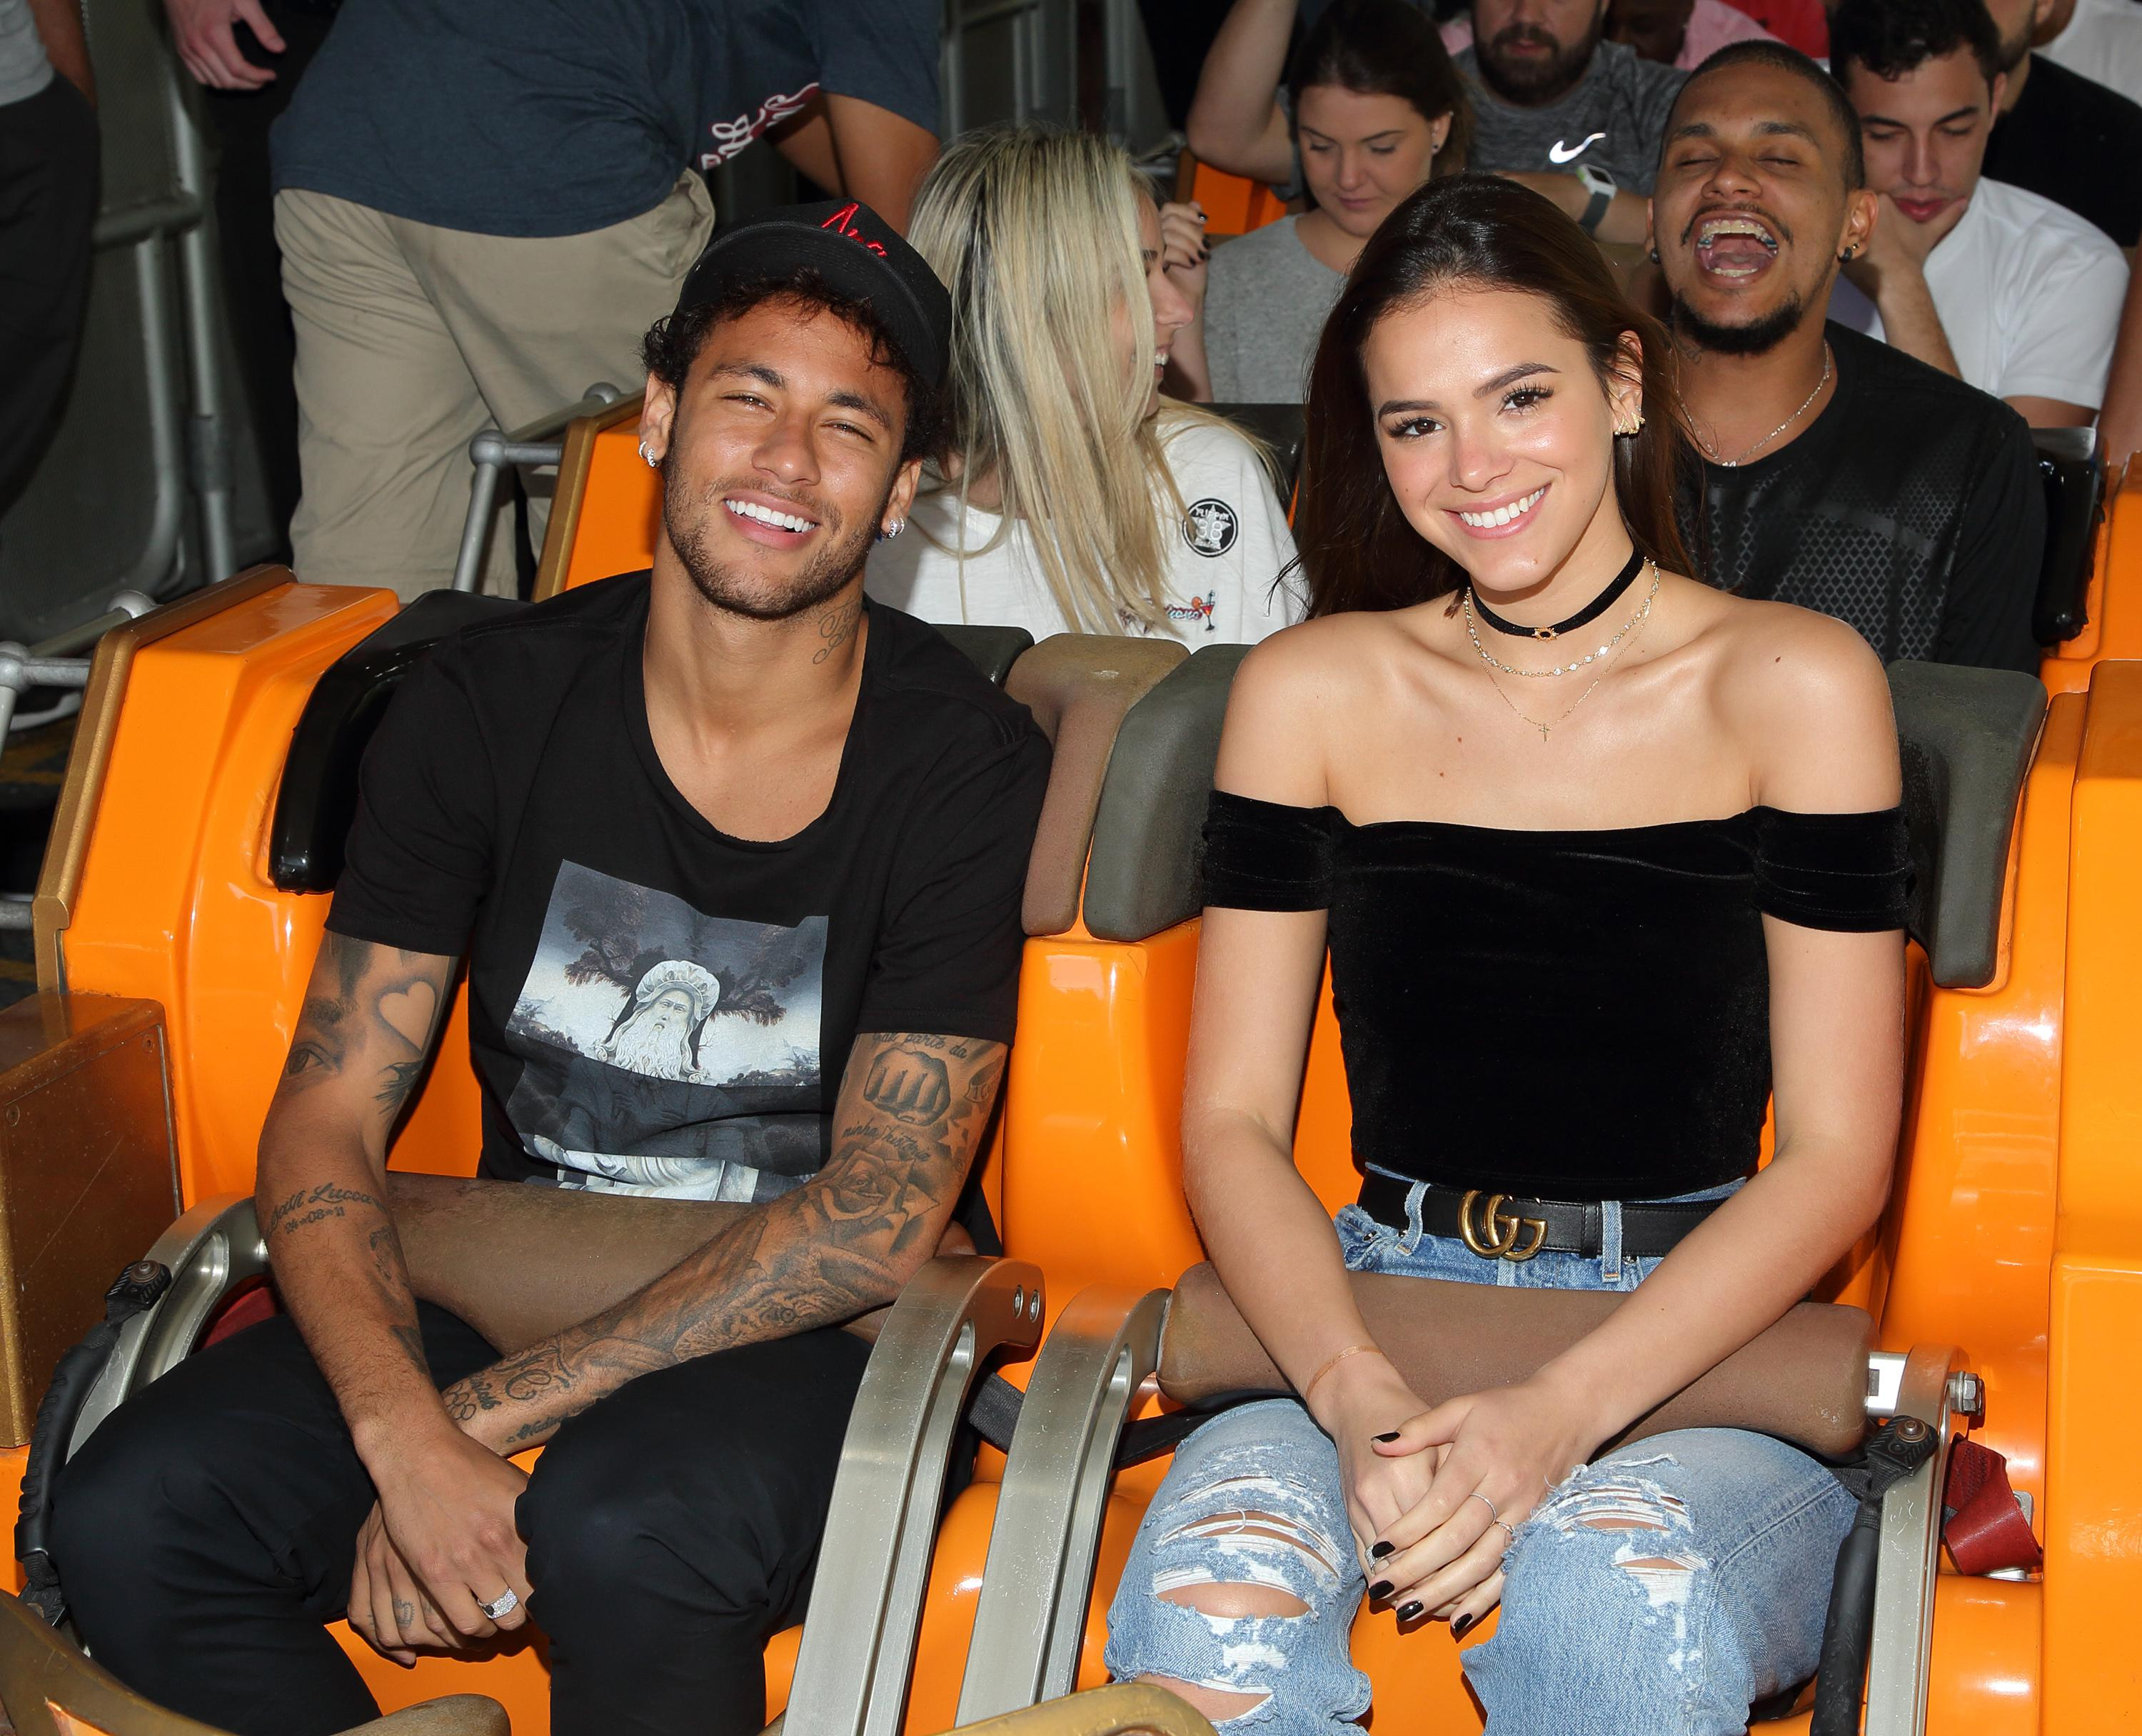 Could Neymar rekindle his romance with Bruna Marquezine in the City of Love?